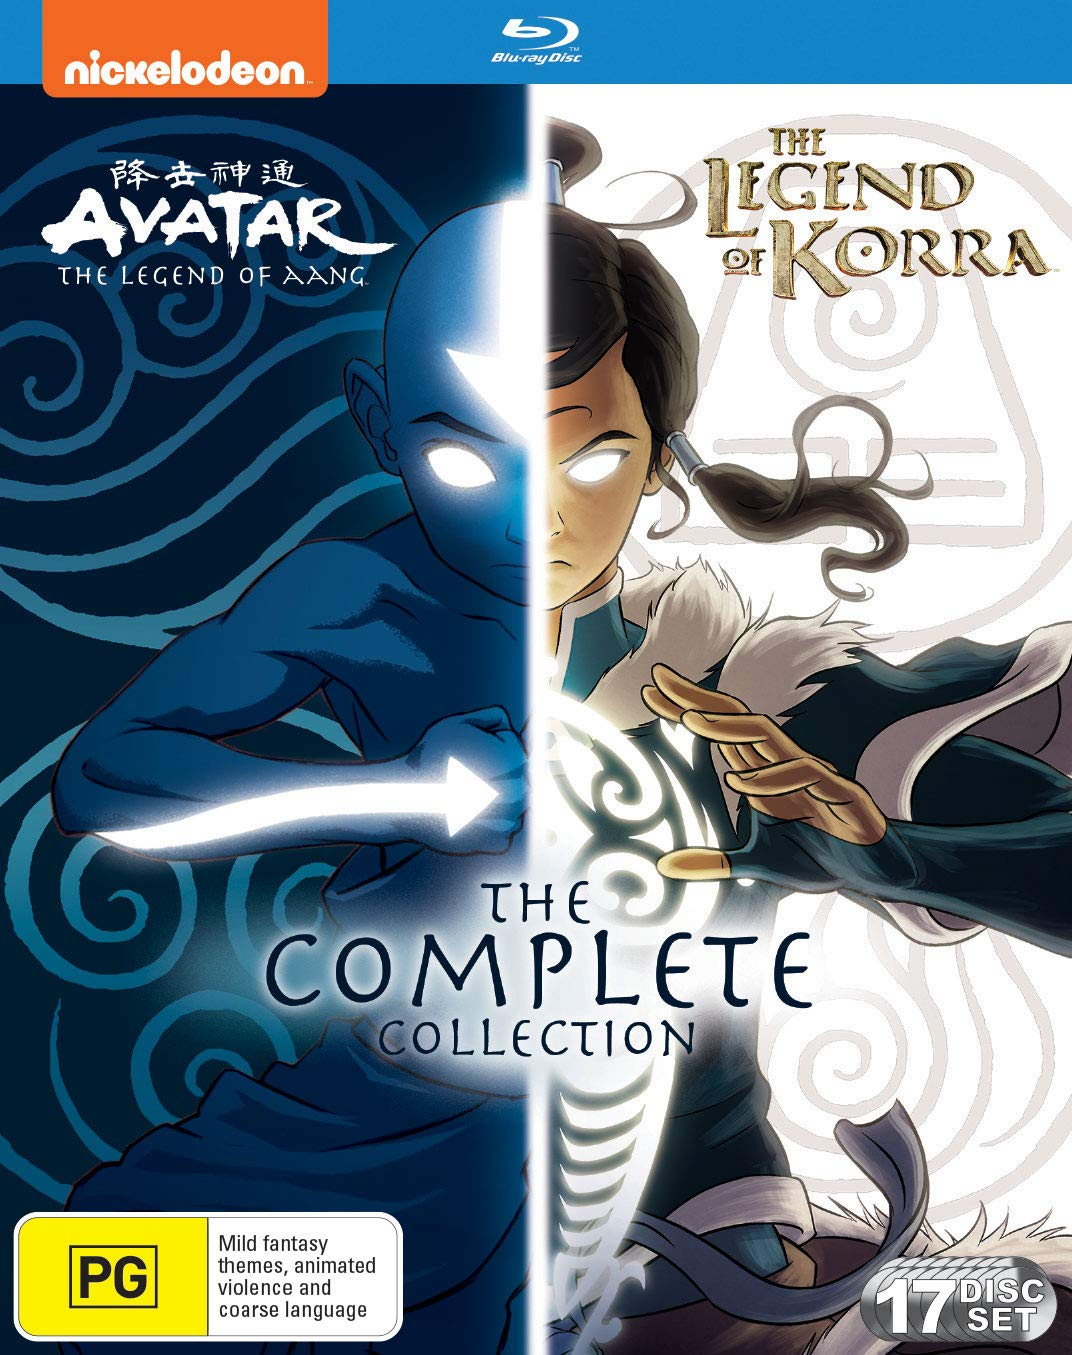 Amazon Com Avatar The Last Airbender The Legend Of Korra The Complete Collection Zach Tyler Janet Varney Mae Whitman David Faustino J K Simmons Movies Tv